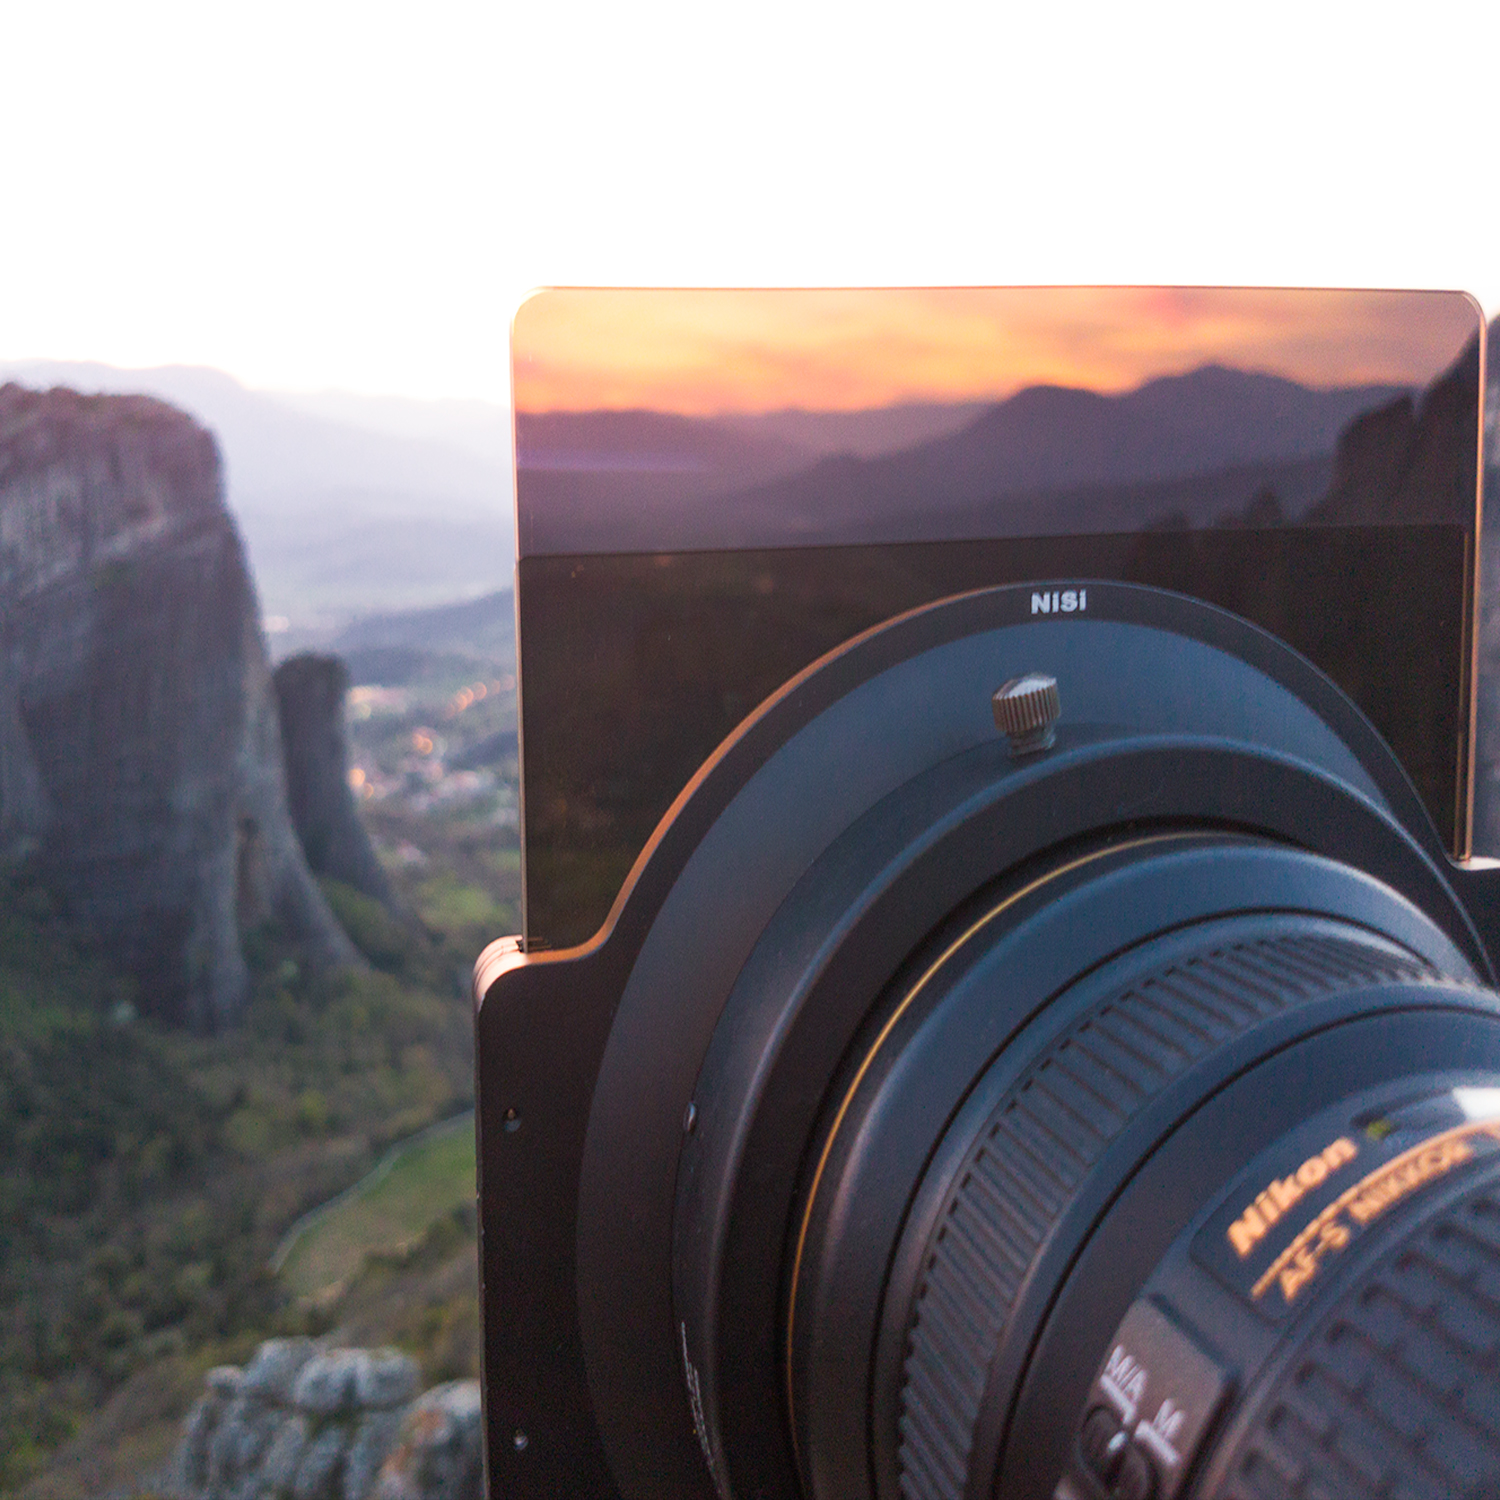 Nisi filters grad nd soft 1.2